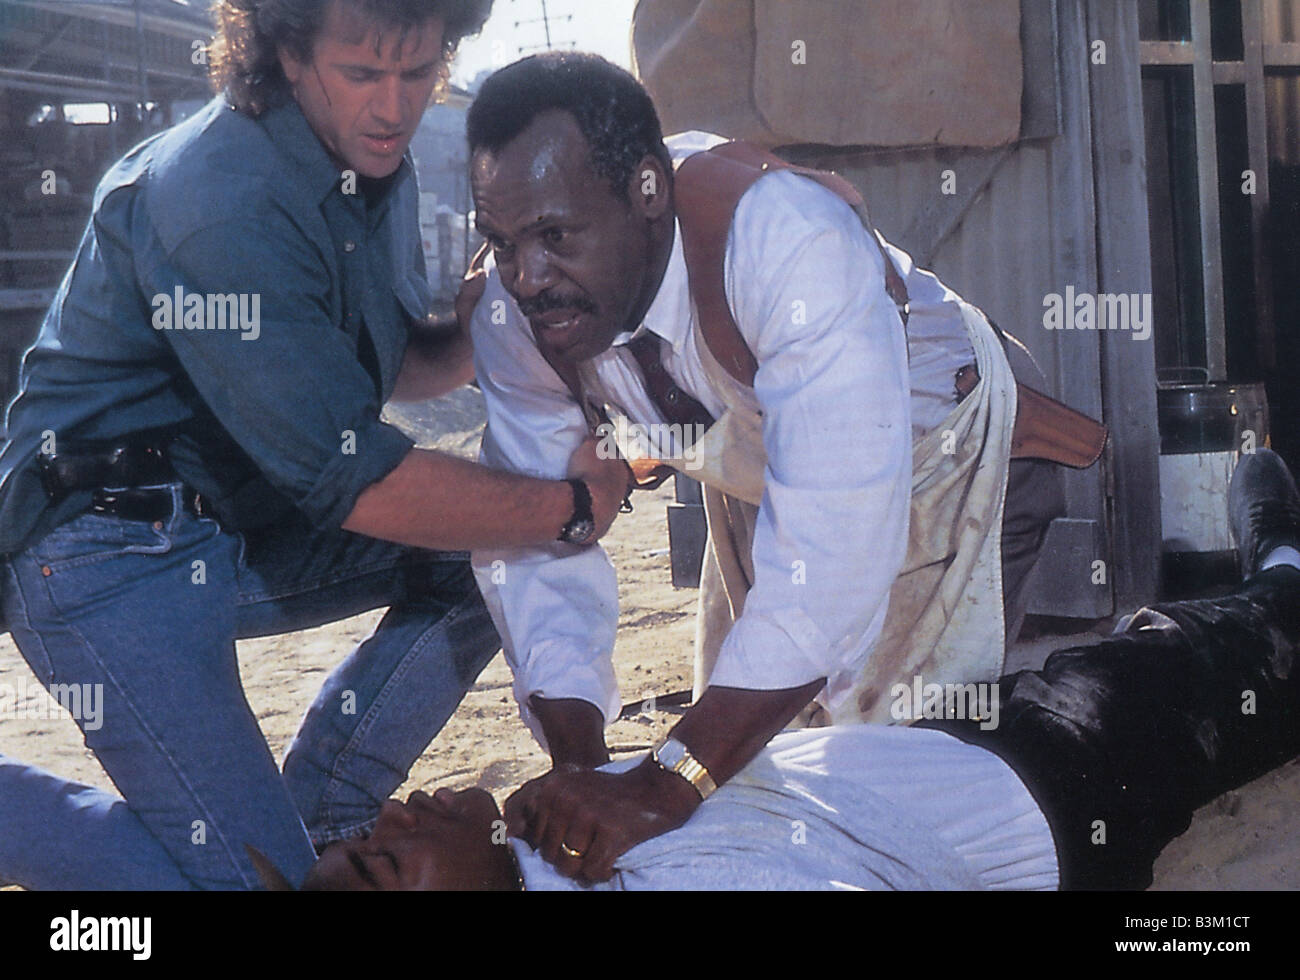 LETHAL WEAPON 3 - 1992 Warner film with Mel Gibson at left and Danny Glover - Stock Image